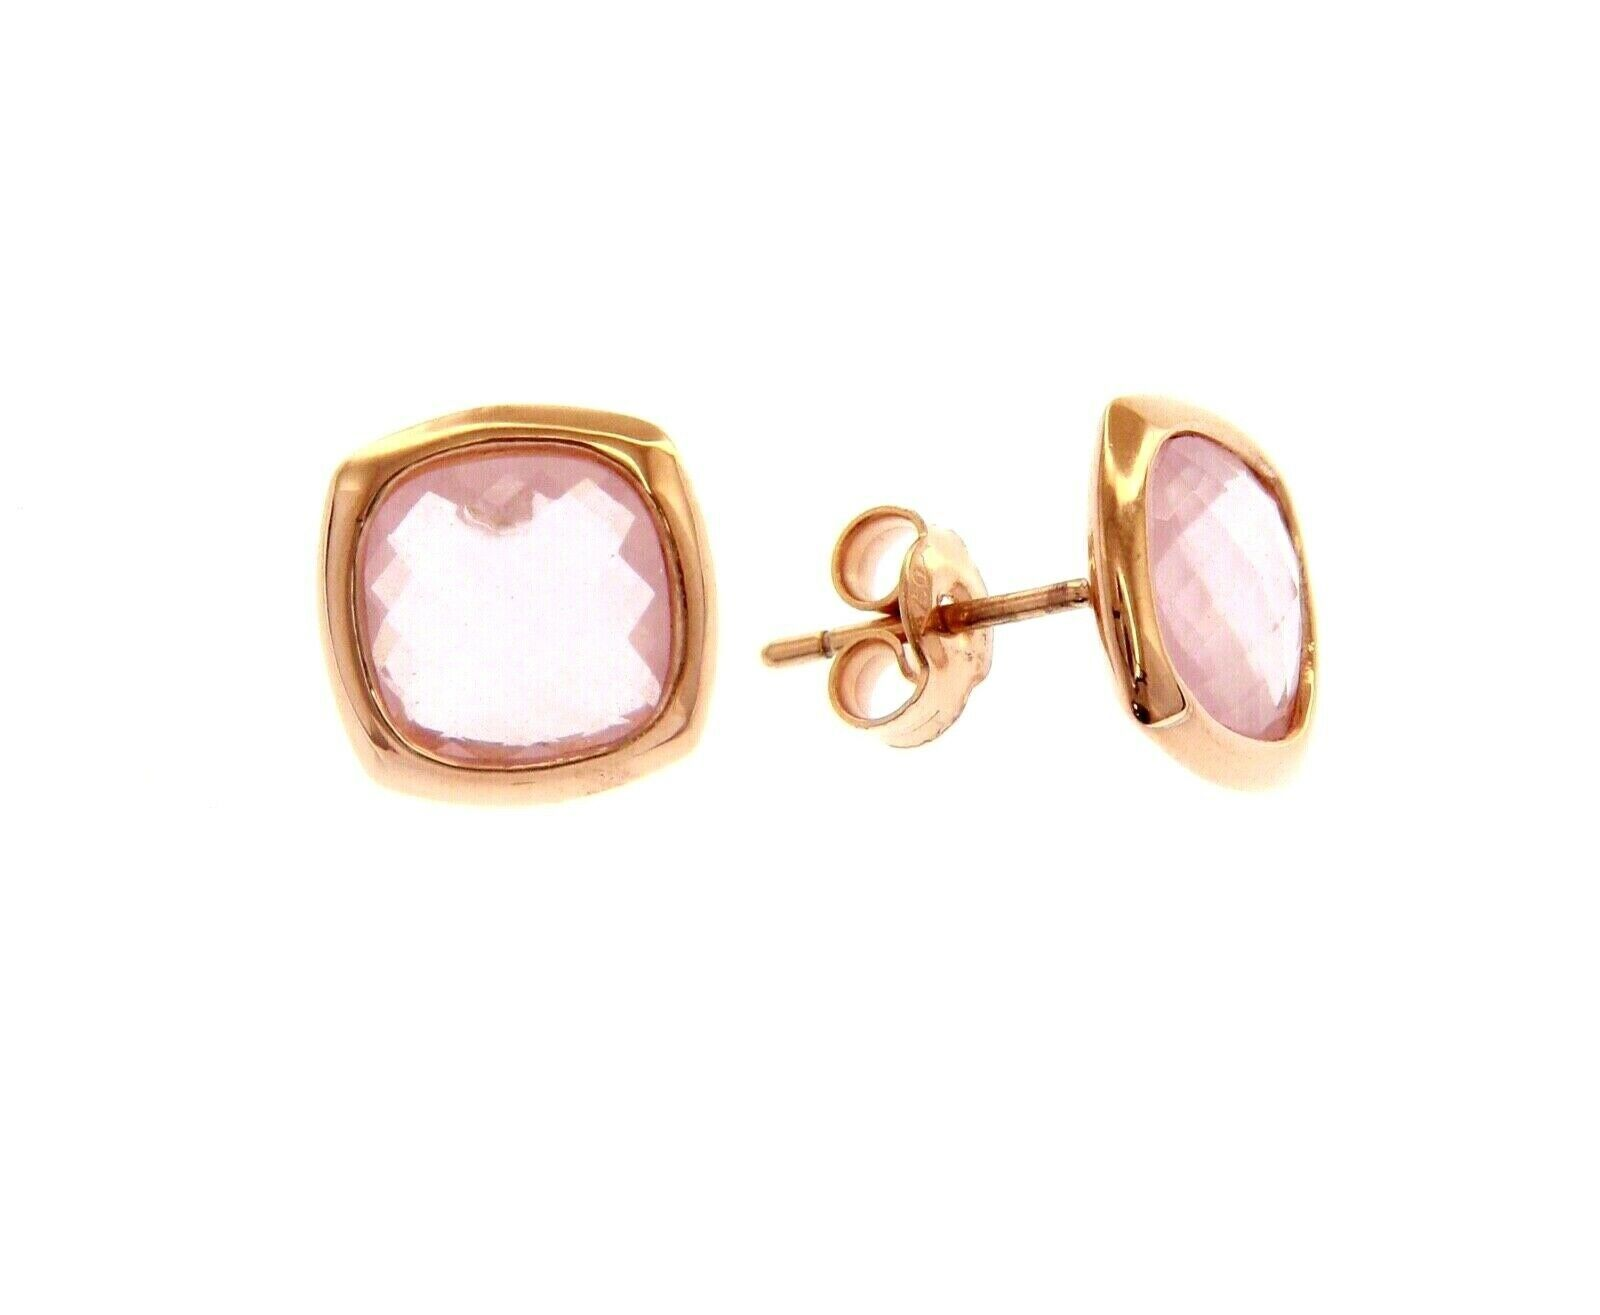 18K ROSE GOLD LOBE EARRINGS BUTTON WITH PINK SQUARE CRYSTAL CUSHION CUT